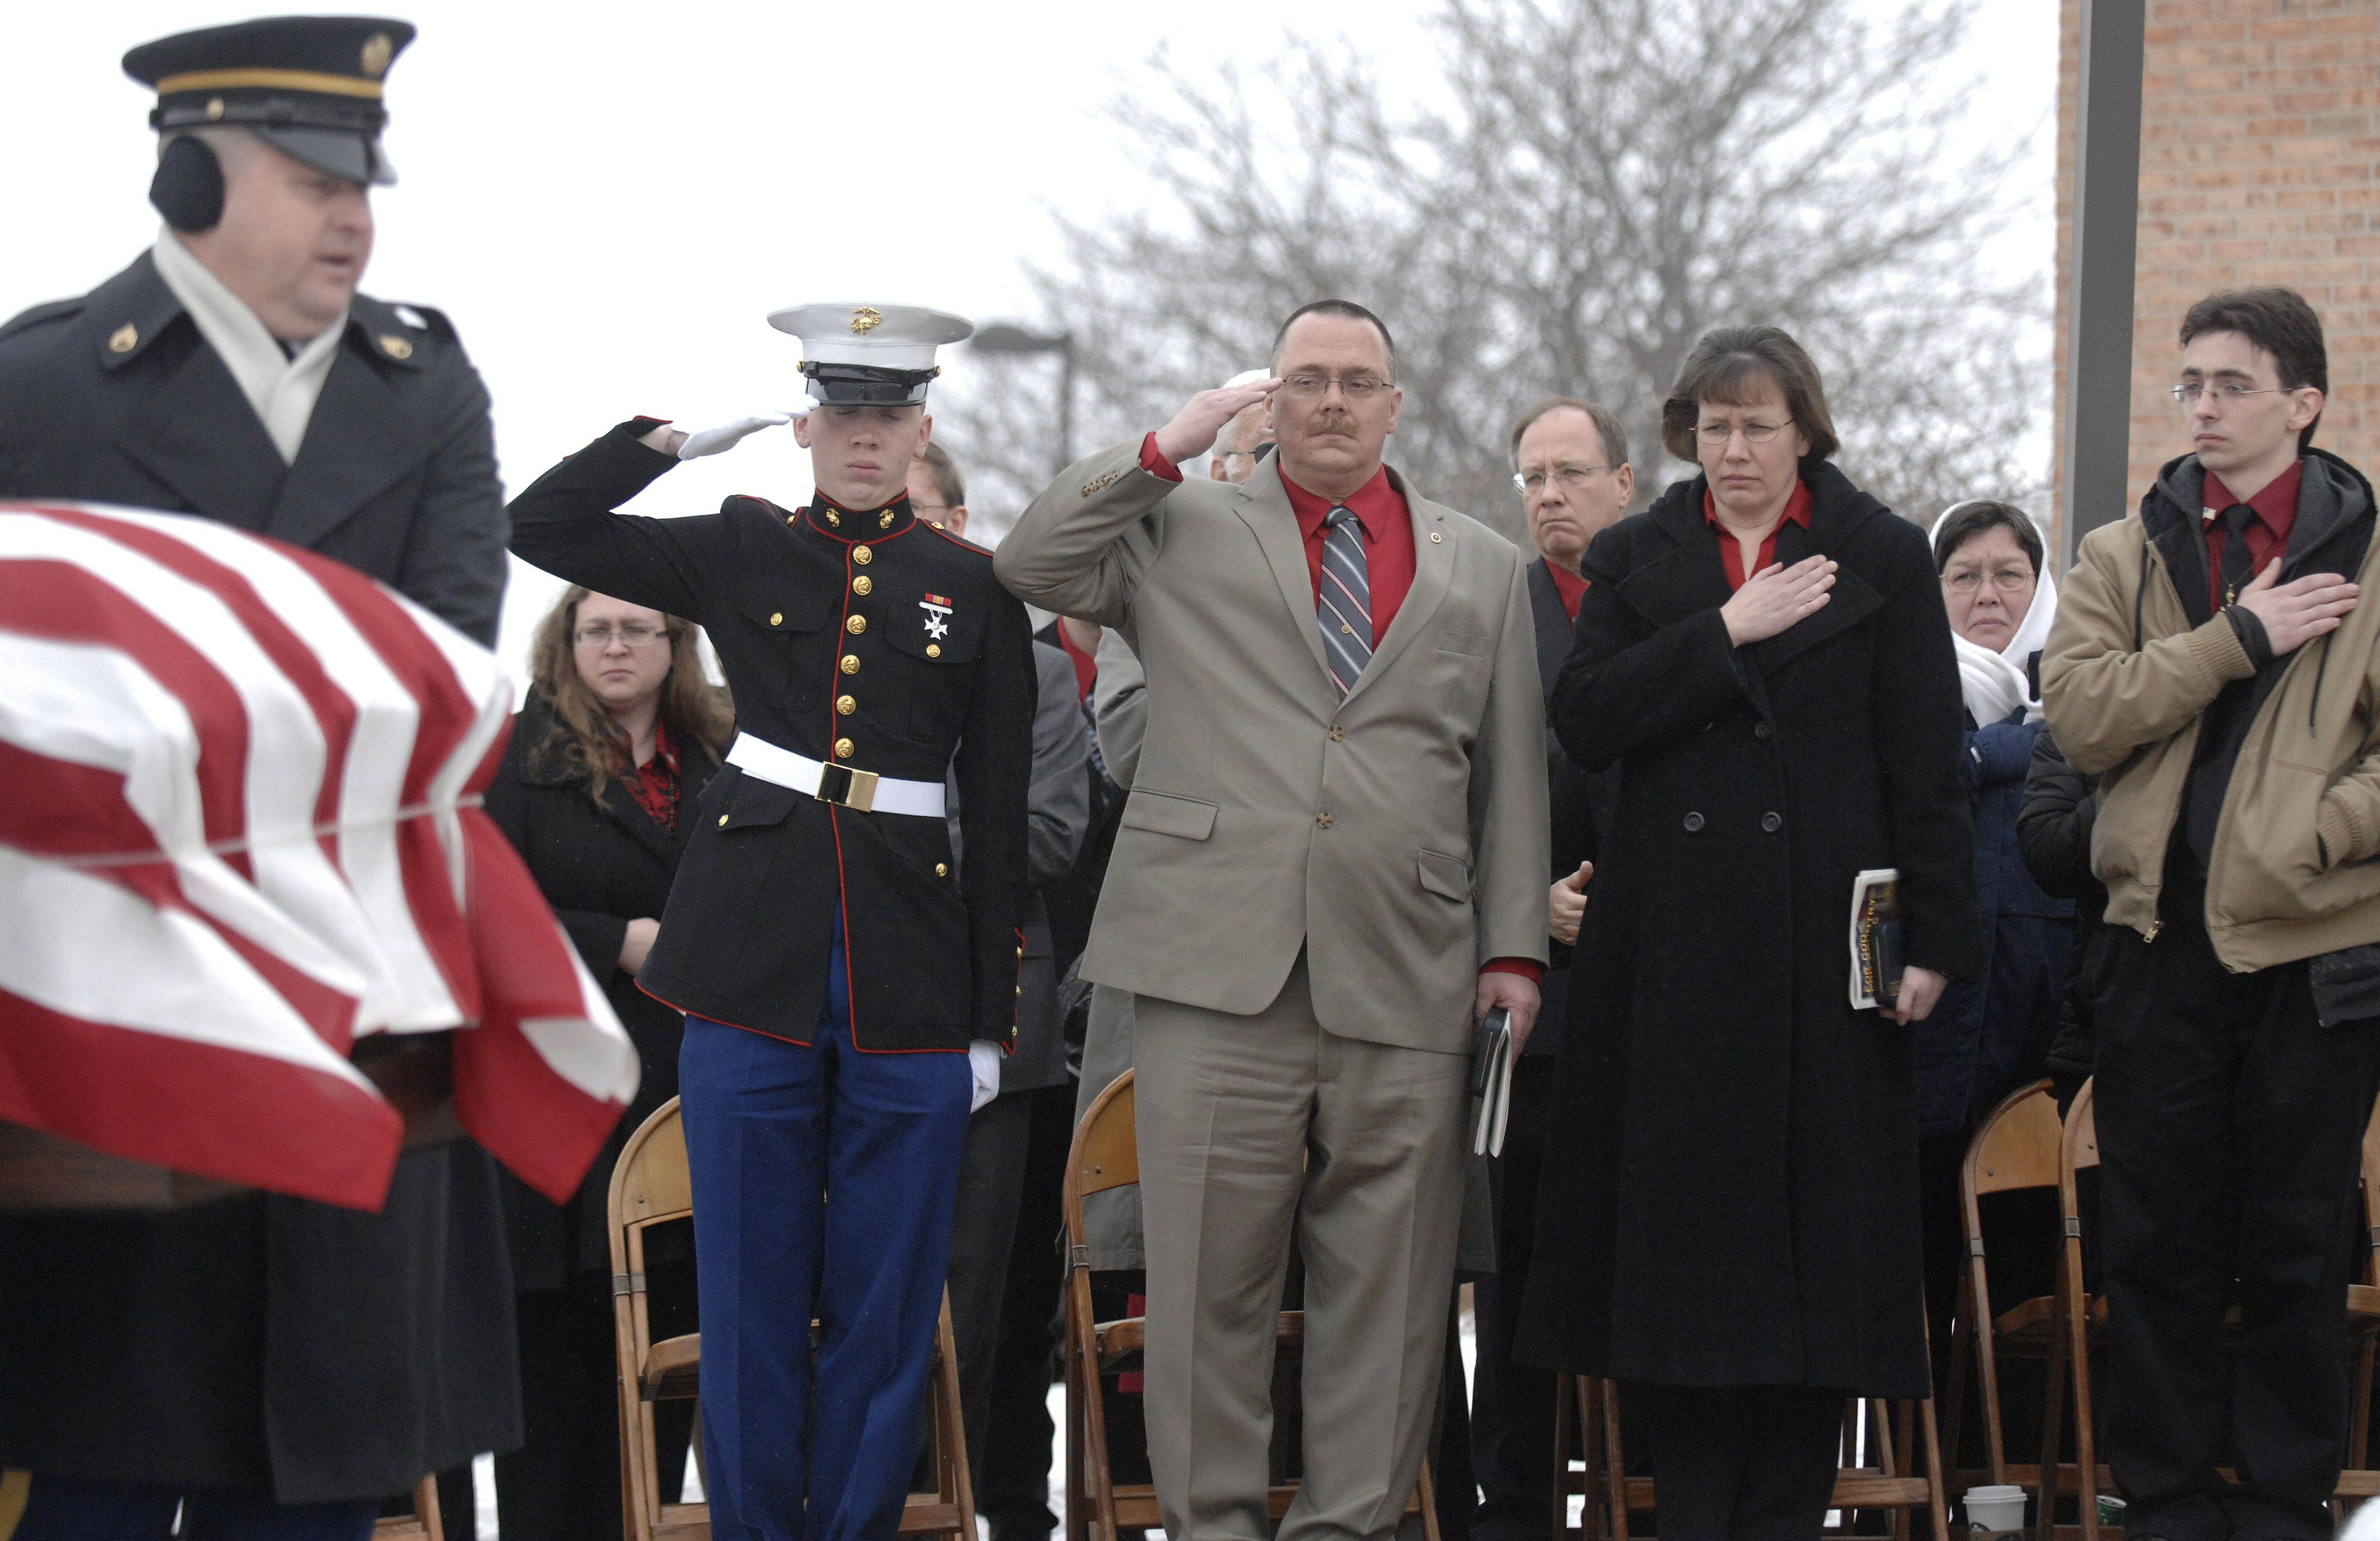 Bob and Mary Patterson, flanked by sons Carl, left, and Thomas pay their respects as the casket of their son, Spc. Christopher A. Patterson, is placed outside Immanuel Lutheran Church for full military honors at his funeral in Batavia on Saturday, January 21. Patterson was a member of the 713th Engineer Company of the Indiana National Guard and was from North Aurora.